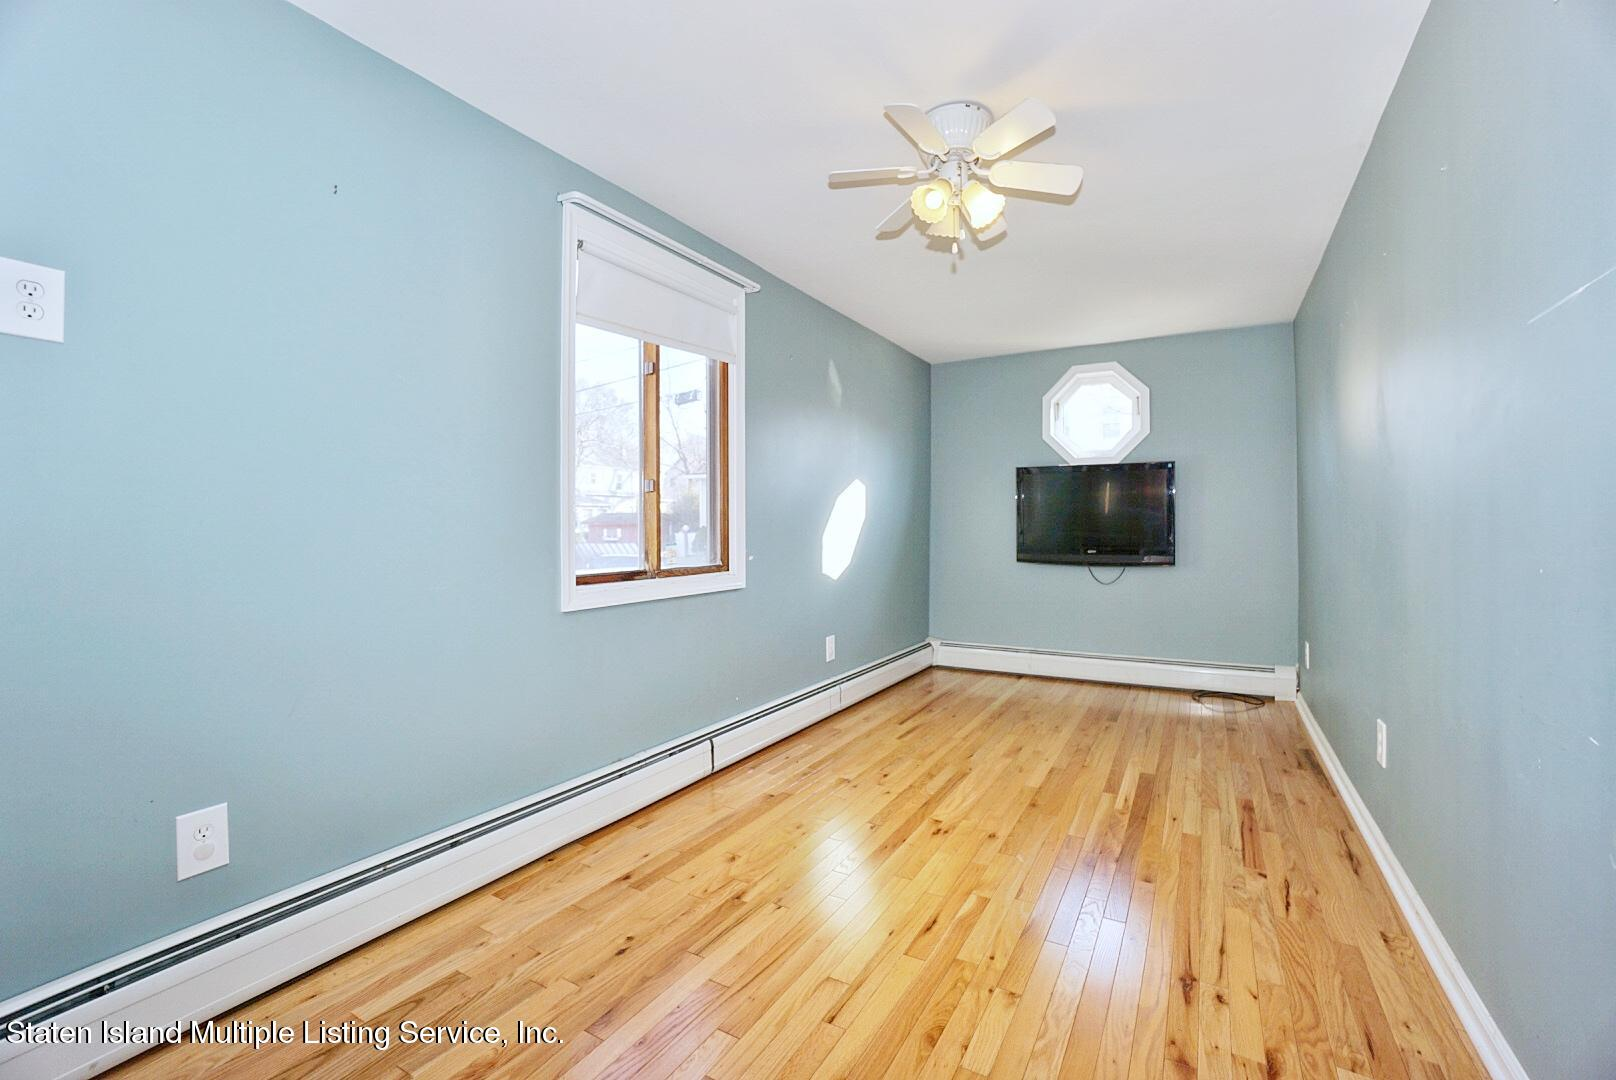 Single Family - Detached 97 Knox Place  Staten Island, NY 10314, MLS-1143147-15